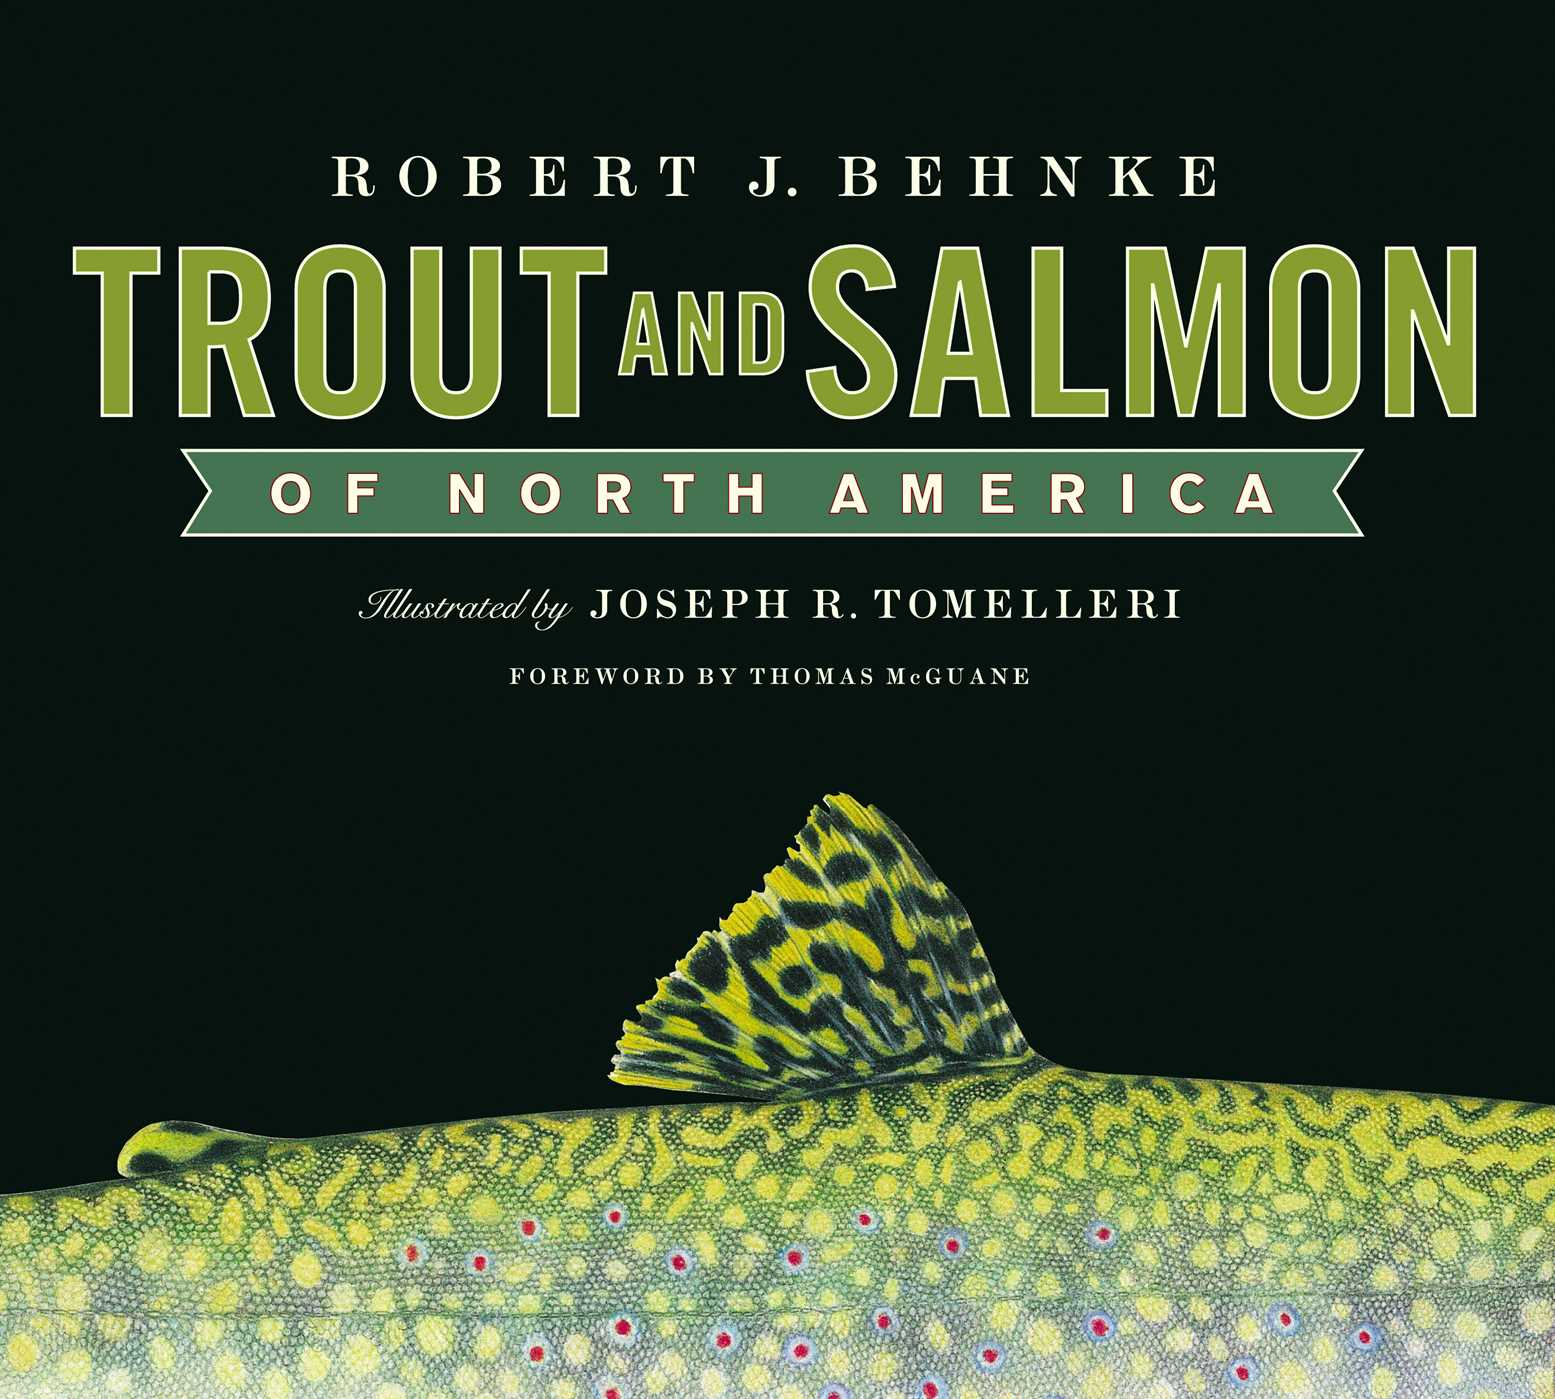 Trout and salmon of north america 9781451603552 hr